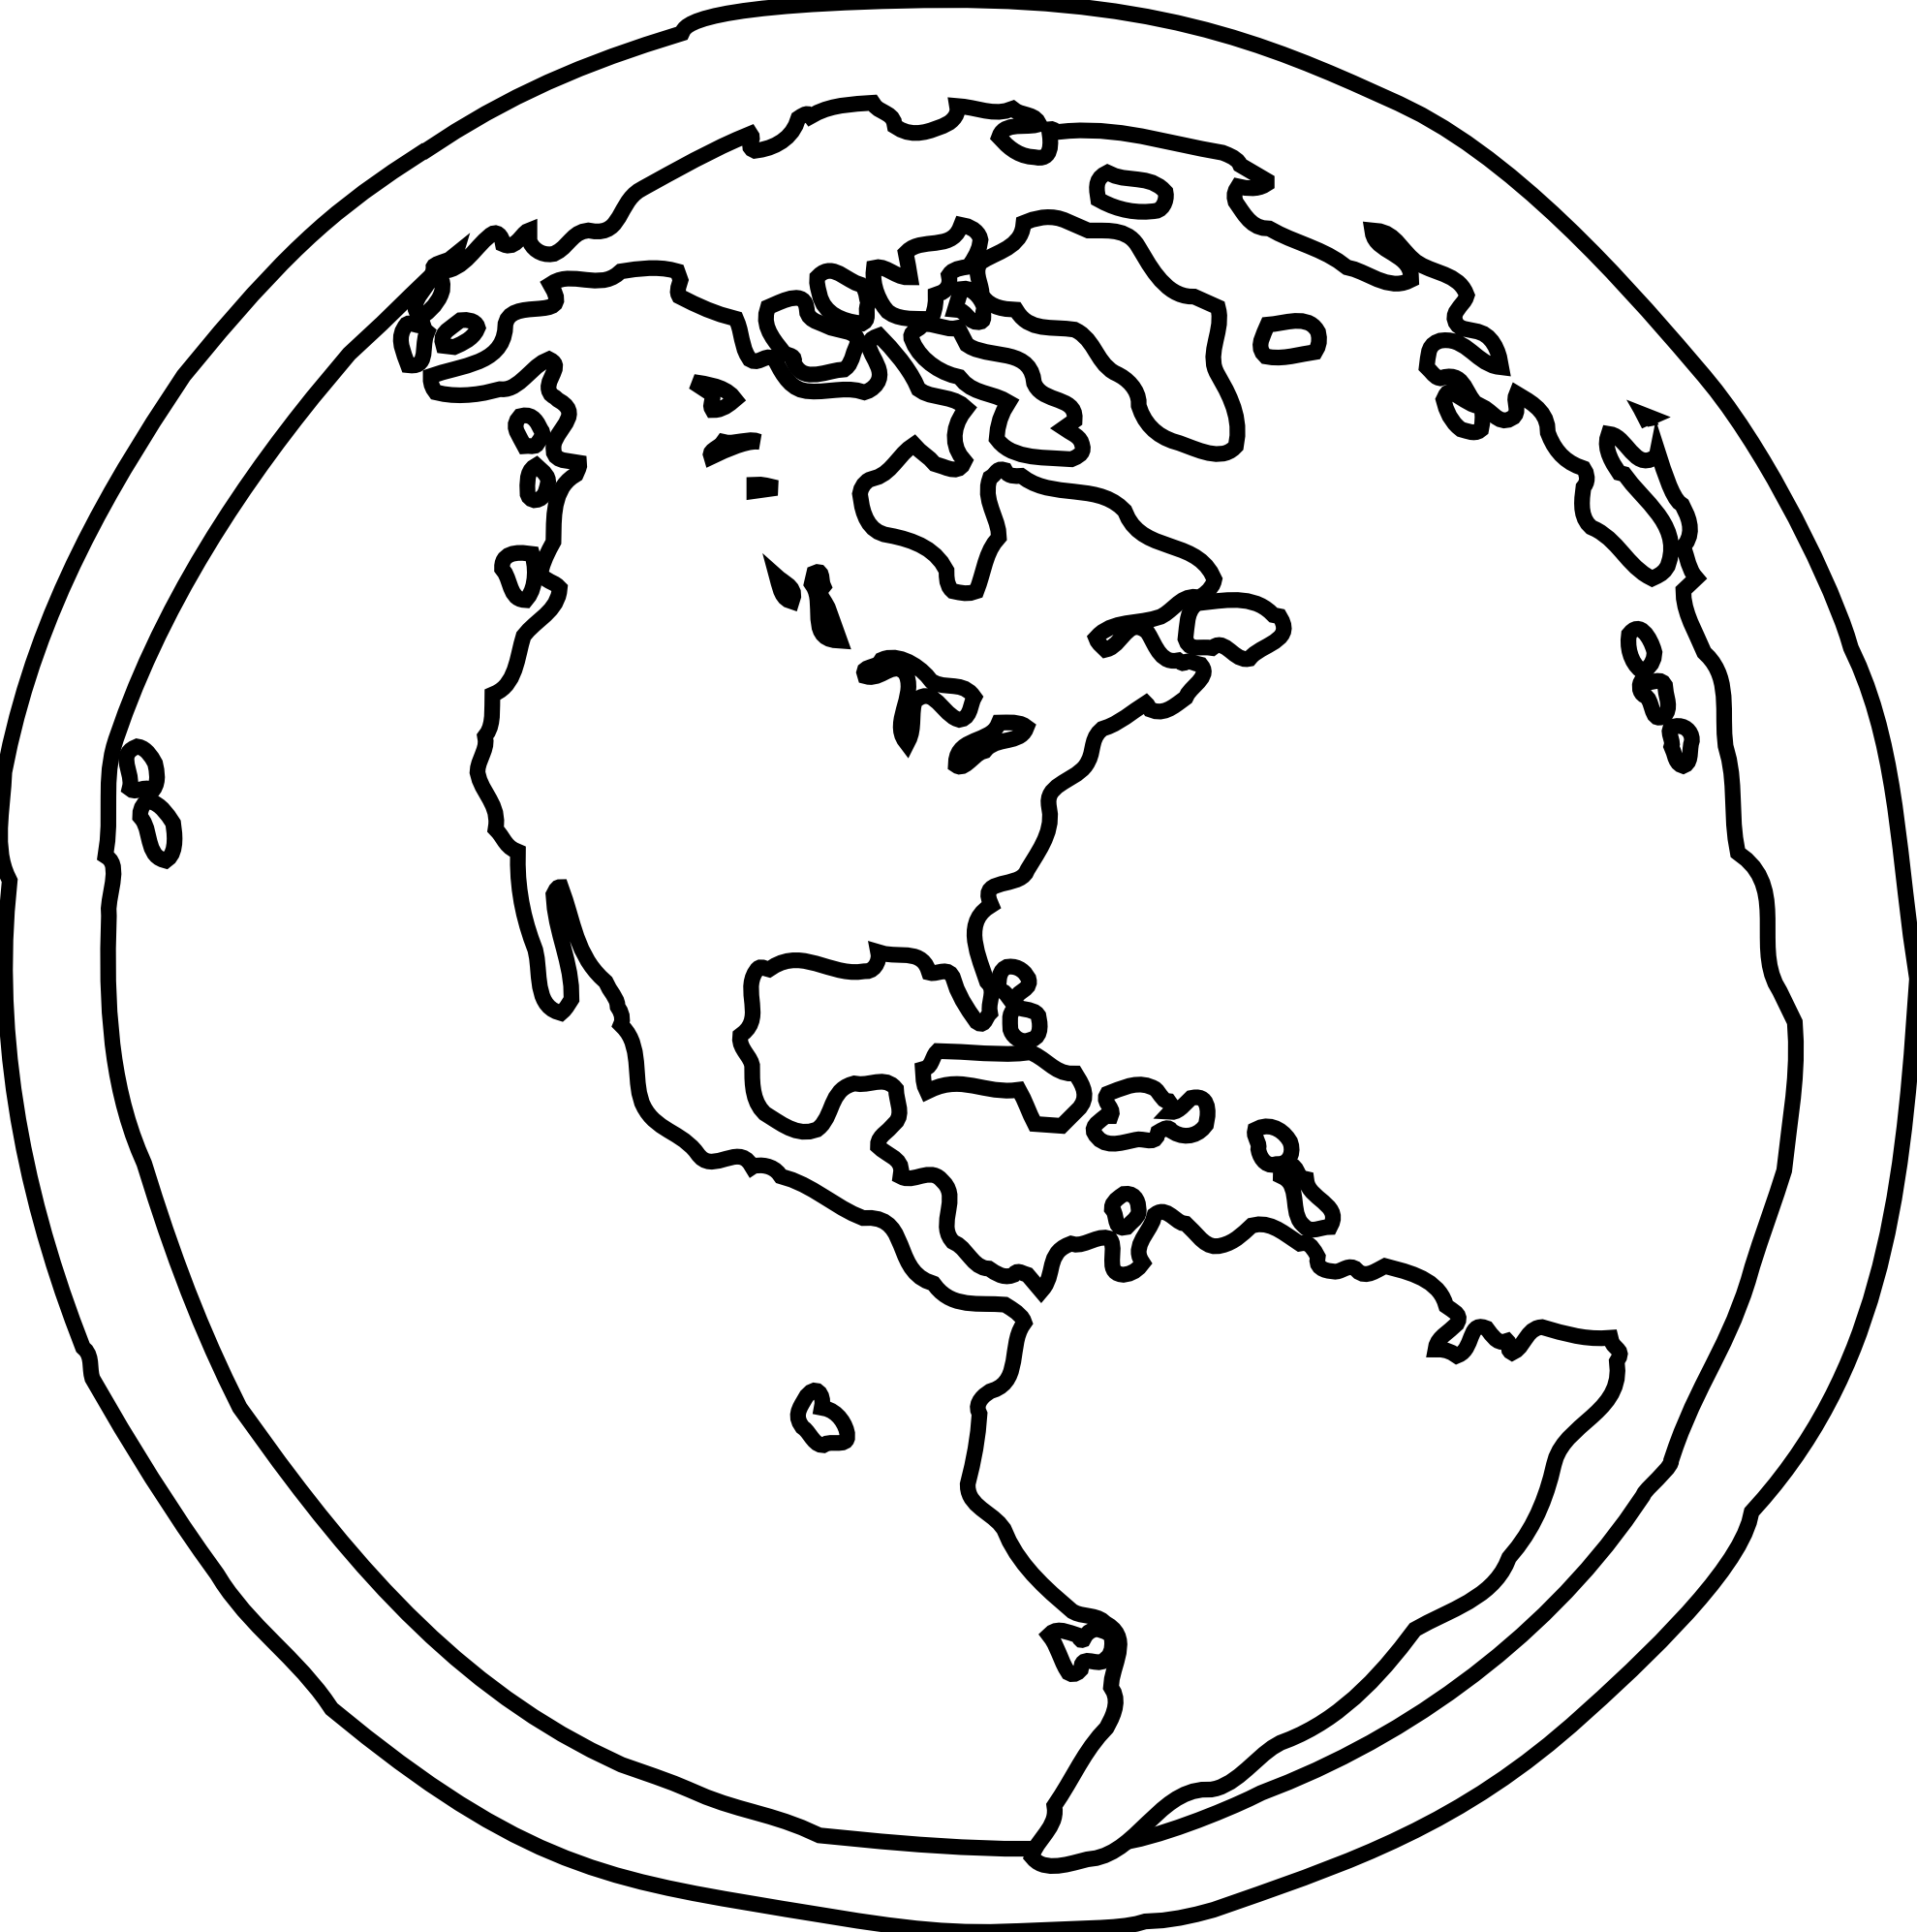 Earth Black And White Outline - ClipArt Best